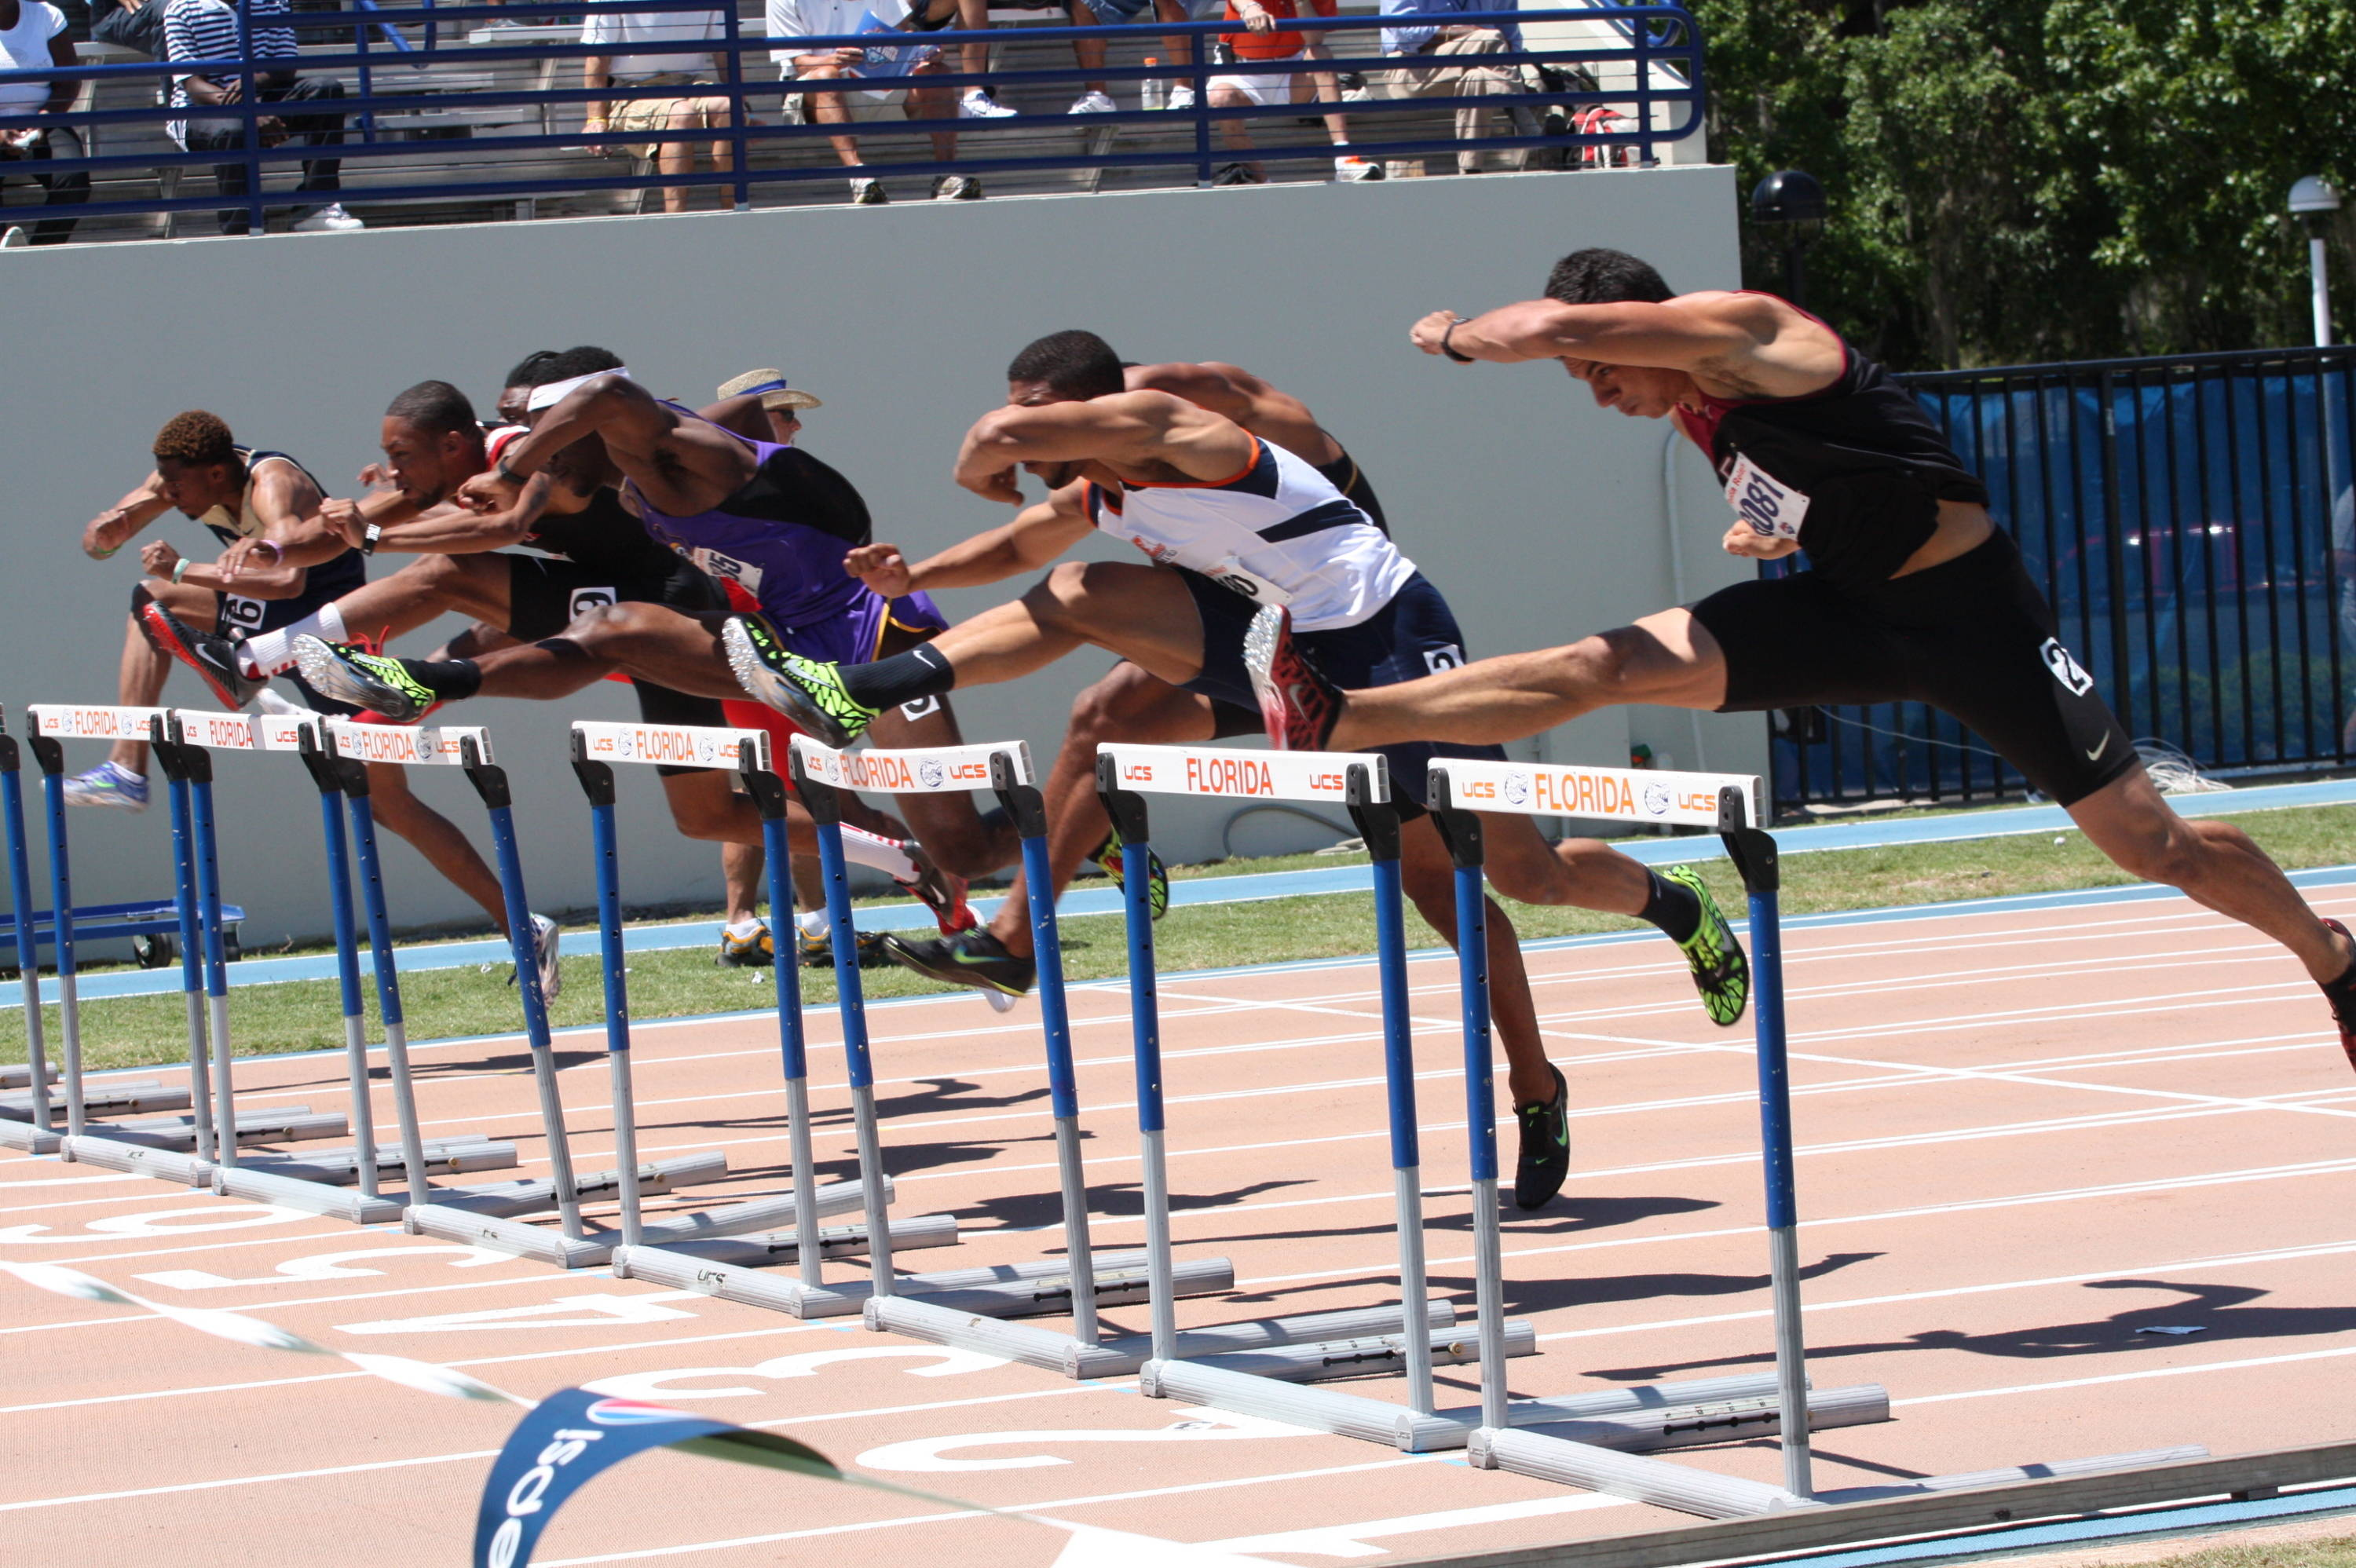 Gonzalo Barroilhet on his was to a strong finish in the 110-meter hurdles